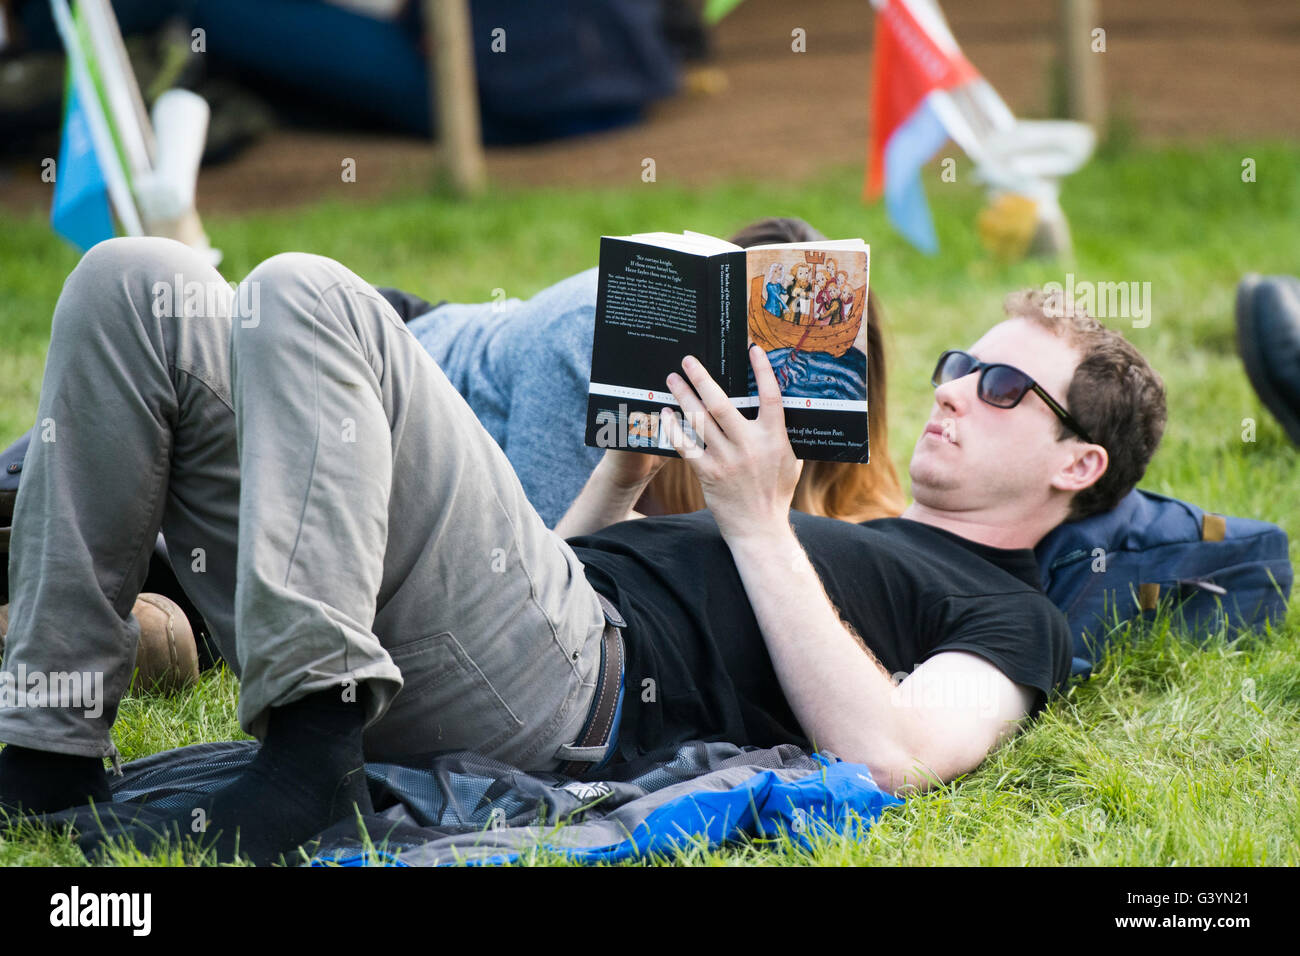 A man lying on his back reading a book  visiting attending enjoying themselves in the warm sunshine  at  the Hay - Stock Image